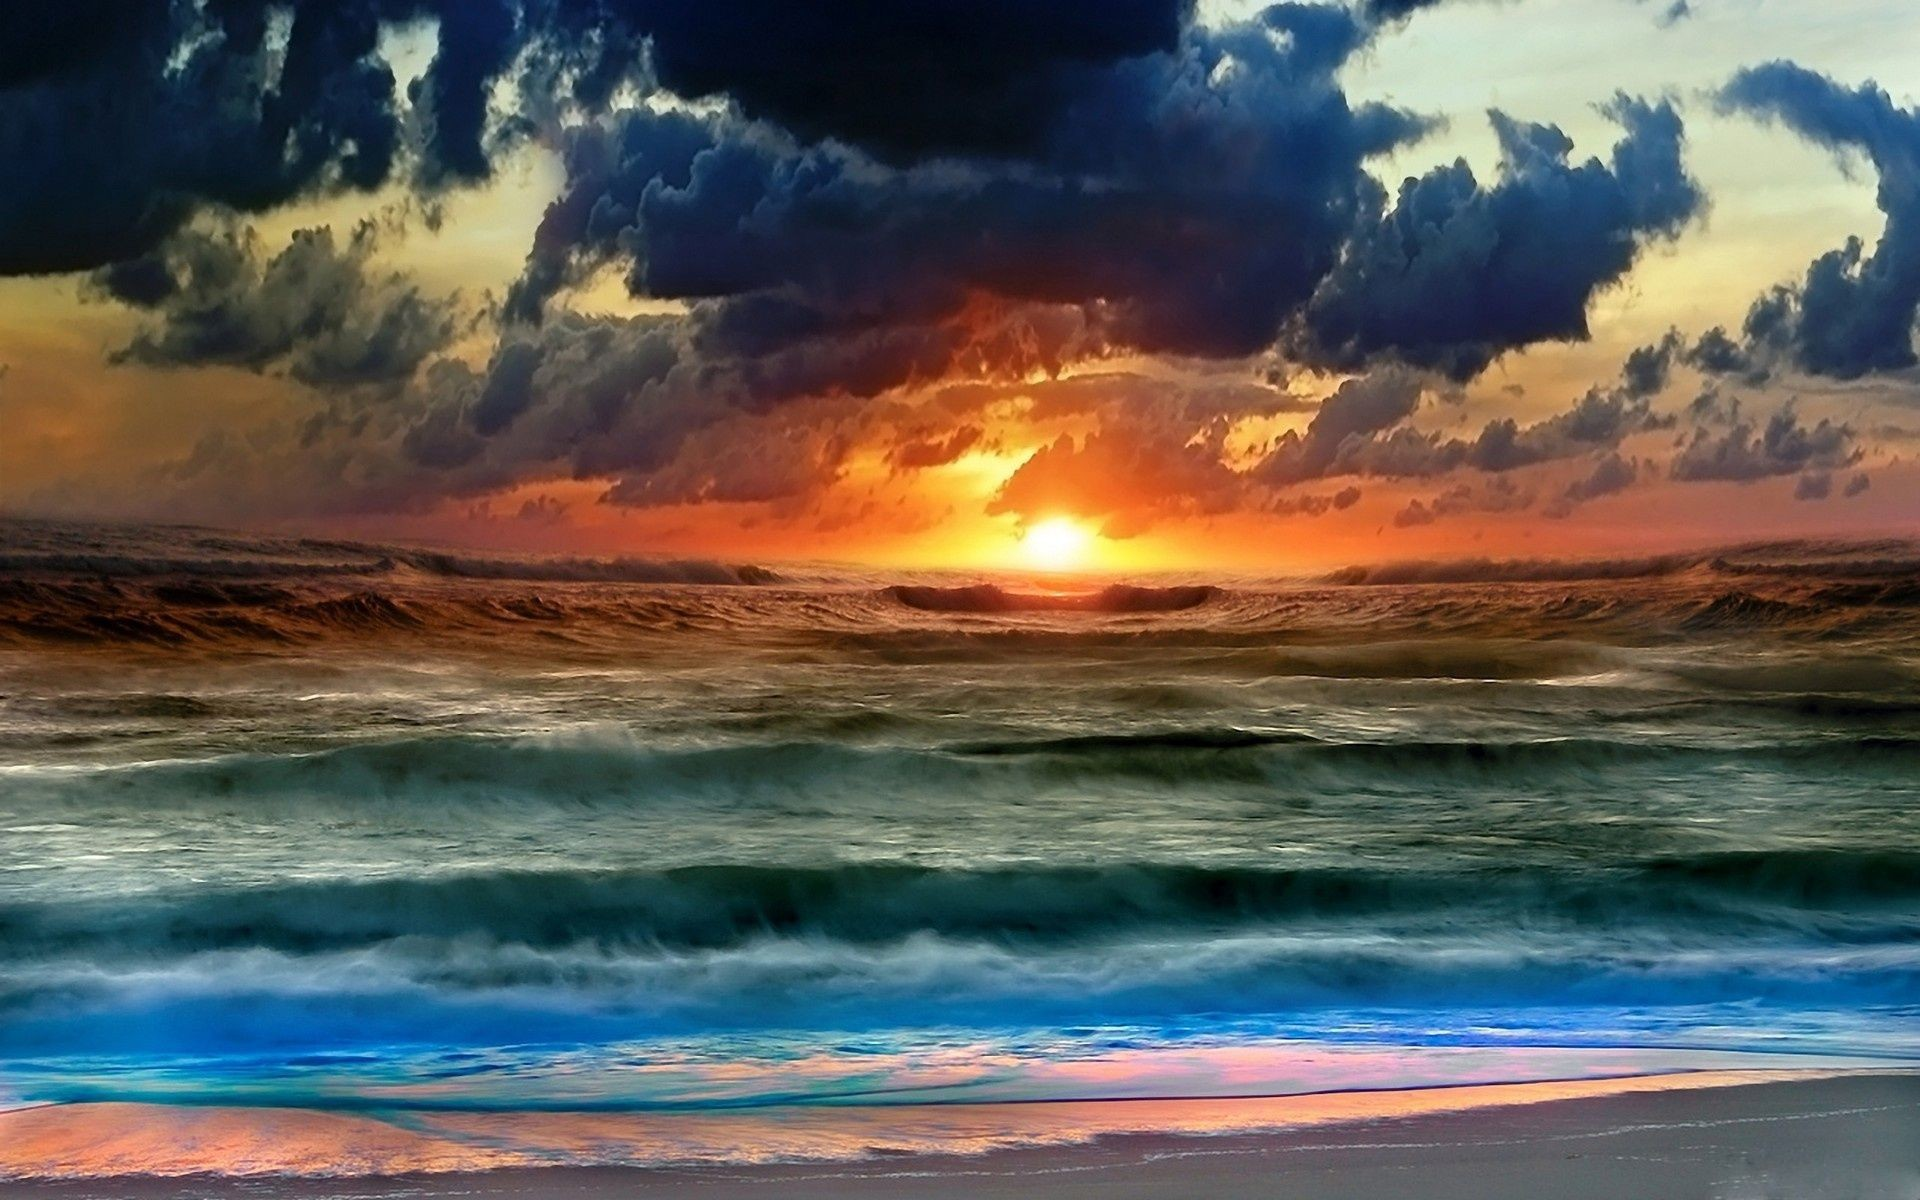 Explore Ocean Sunset, The Ocean, and more! Stormy Sunset wallpaper